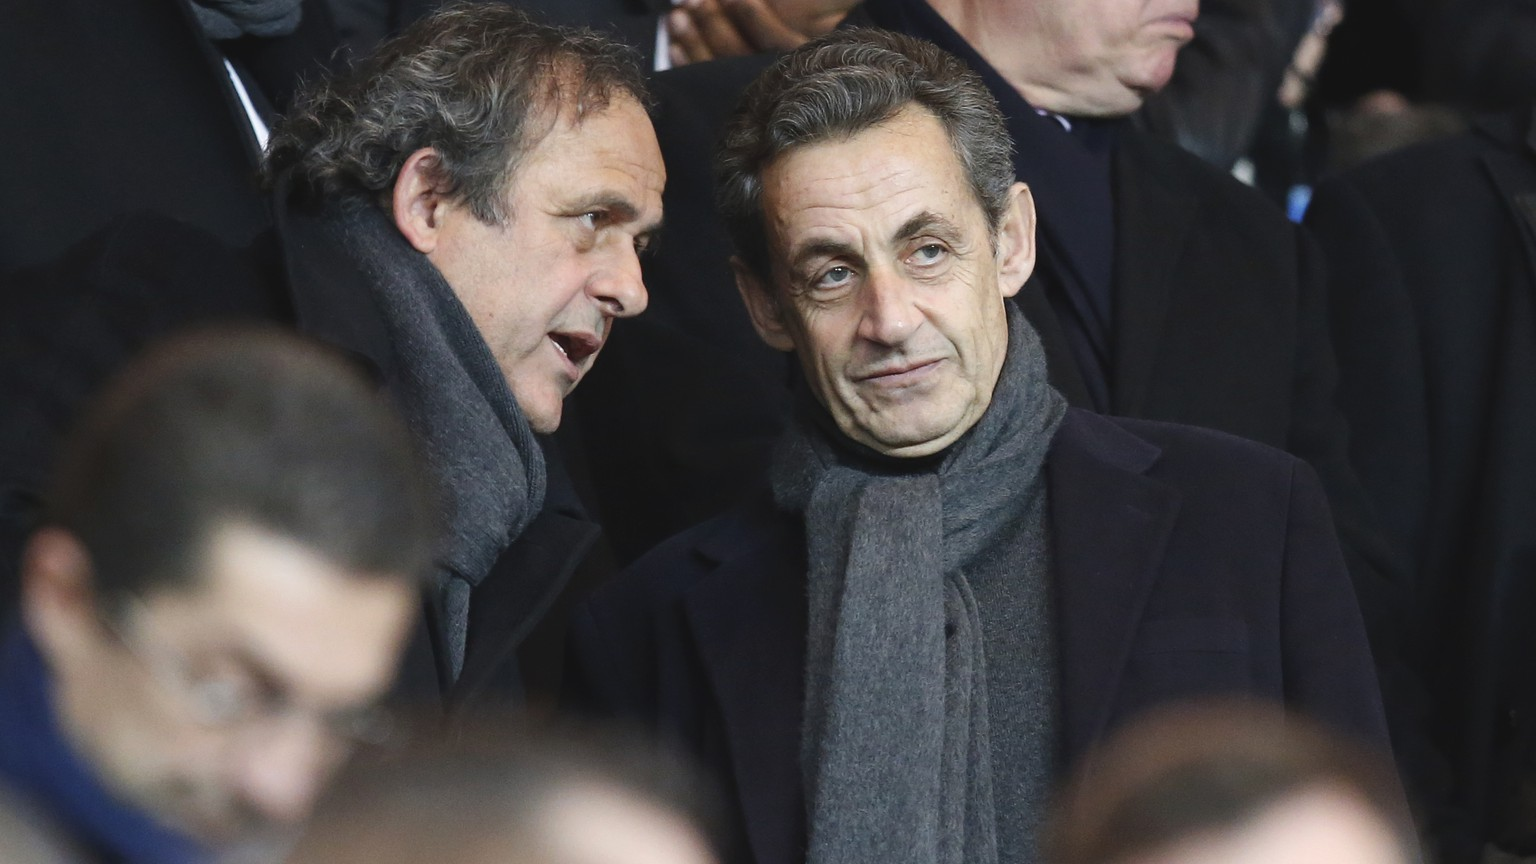 Former French President Nicolas Sarkozy, right, listens to UEFA President Michel Platini, before the Champions League round of 16 first leg soccer match between Paris Saint Germain and Chelsea at the Parc des Princes stadium in Paris, France, Tuesday, Feb. 17, 2015. Striker Edinson Cavani gave Paris Saint-Germain a Champions League lifeline with a second-half equalizer as his team drew 1-1 with Chelsea in the first leg of their last 16 match on Tuesday. (AP Photo/Michel Euler)